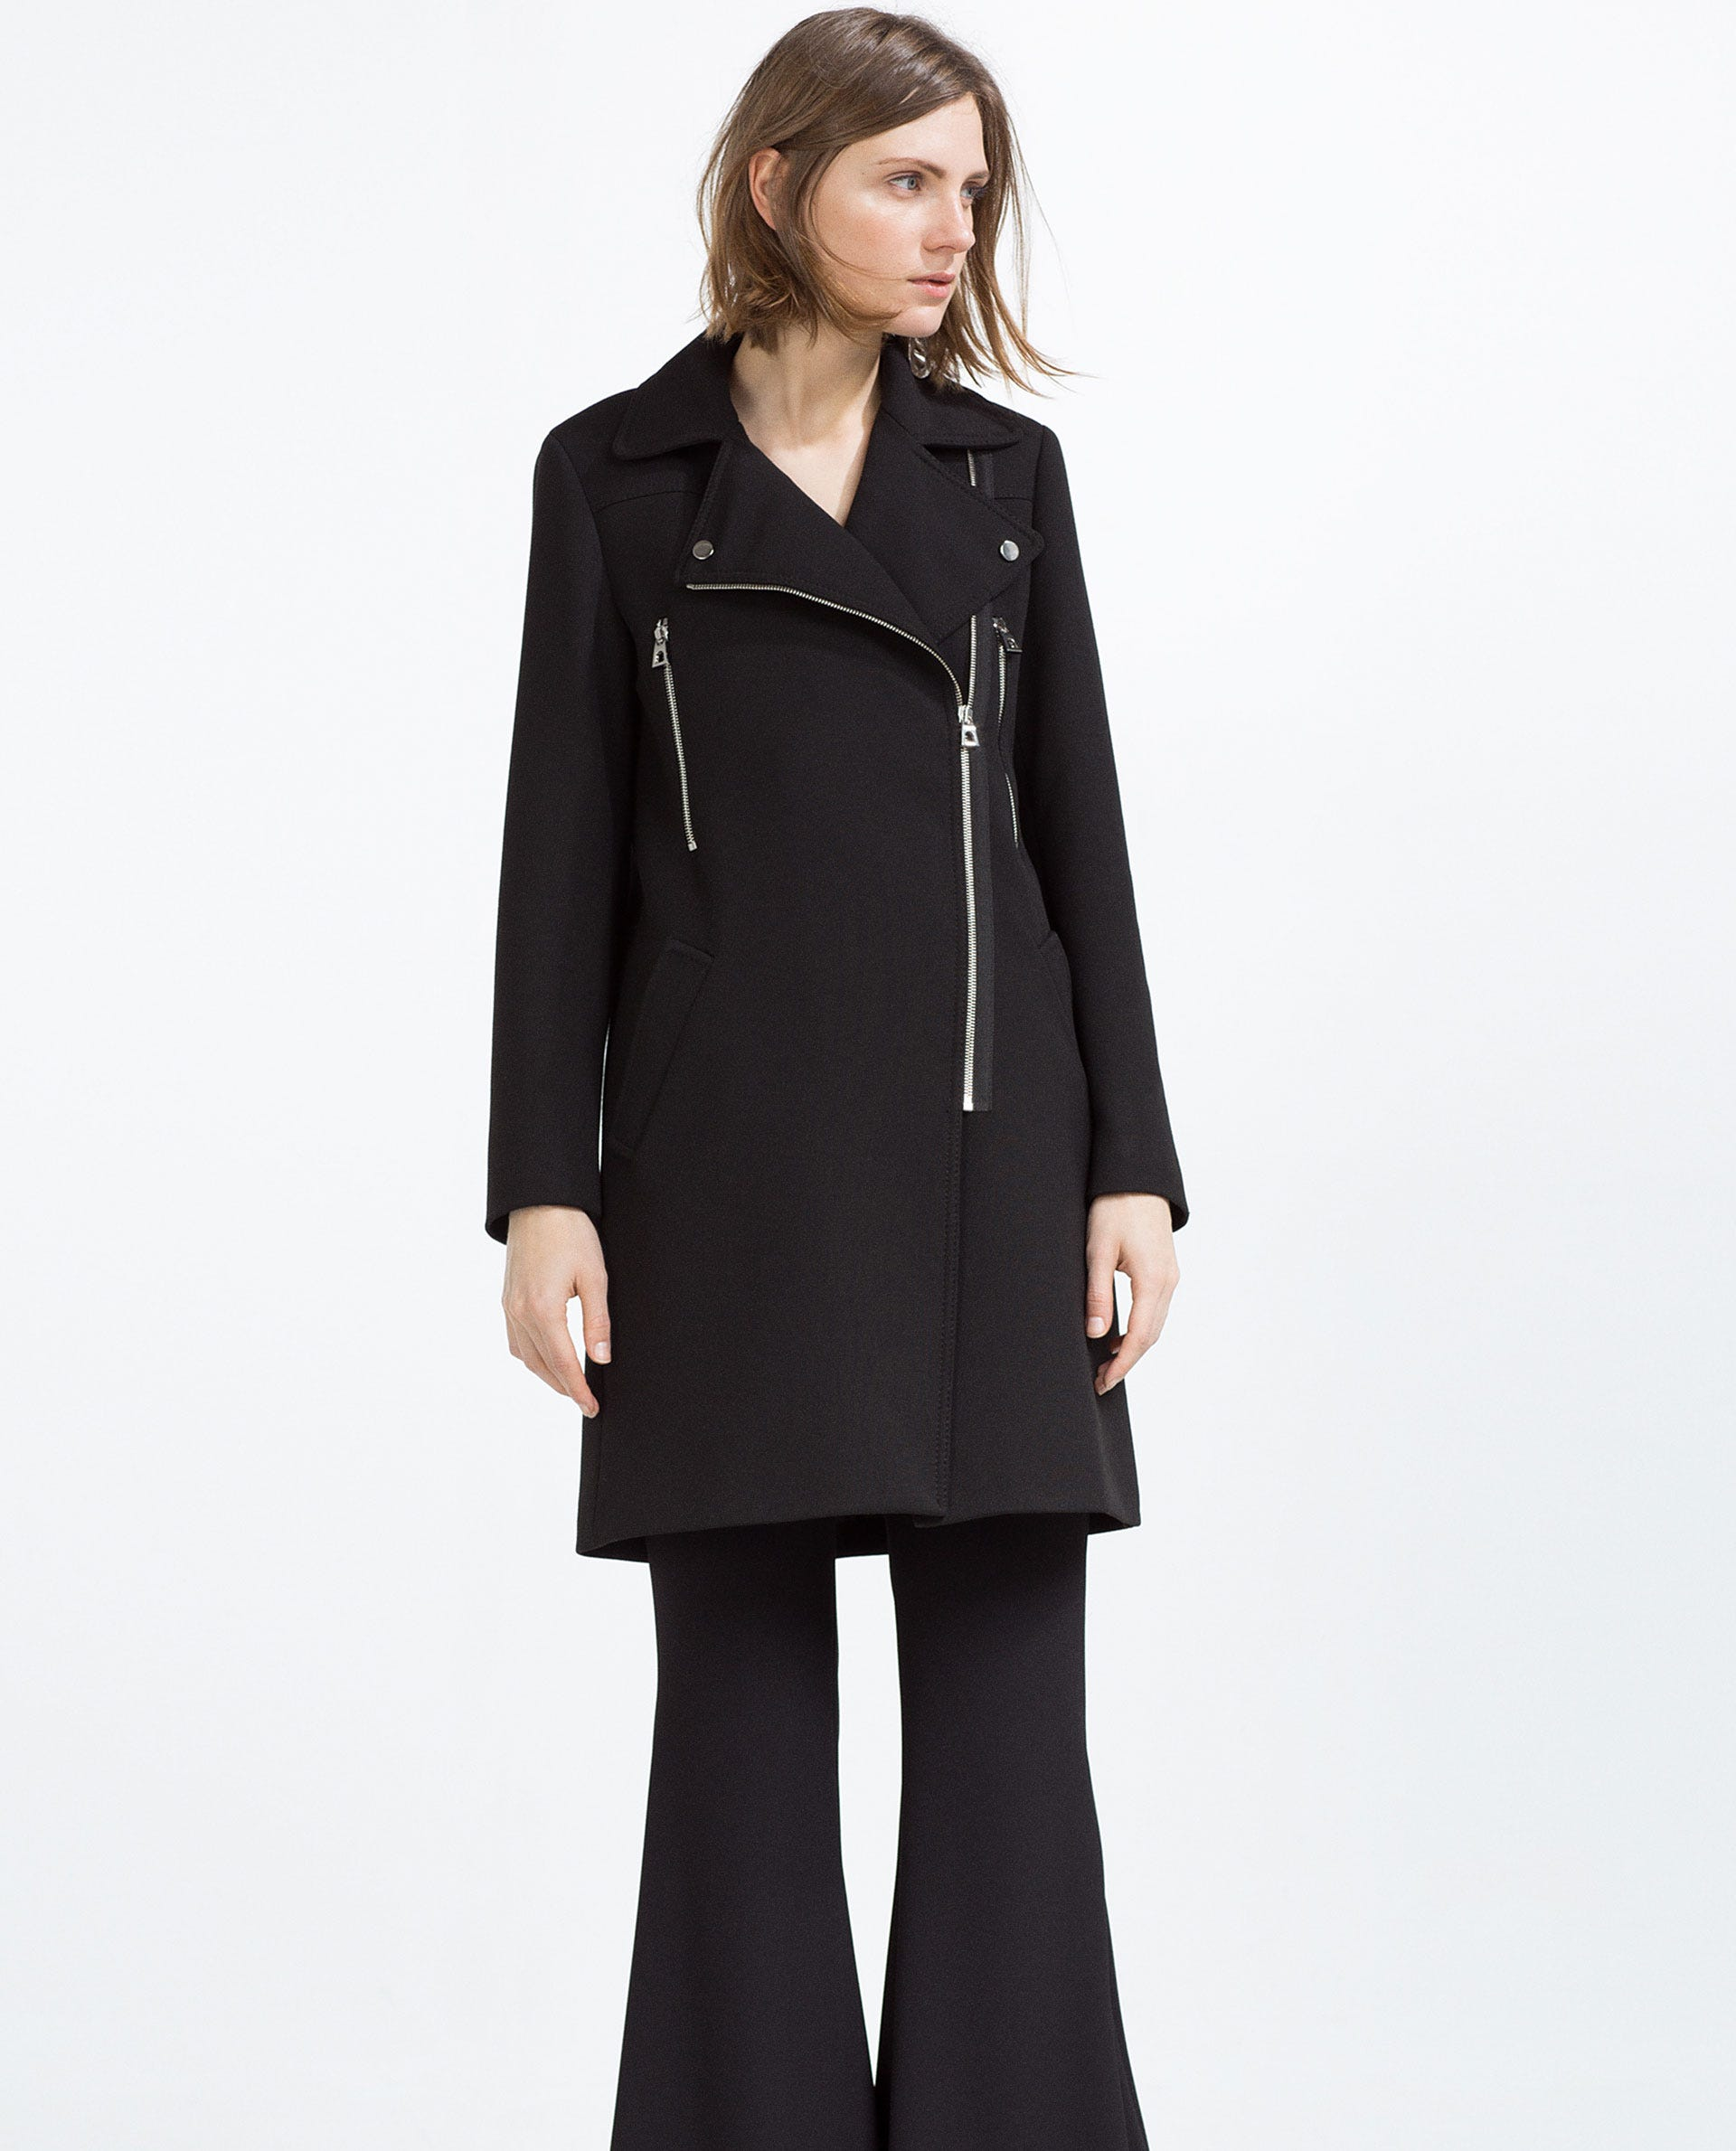 c53e2197 What Sells Fastest At Zara - Affordable Coats